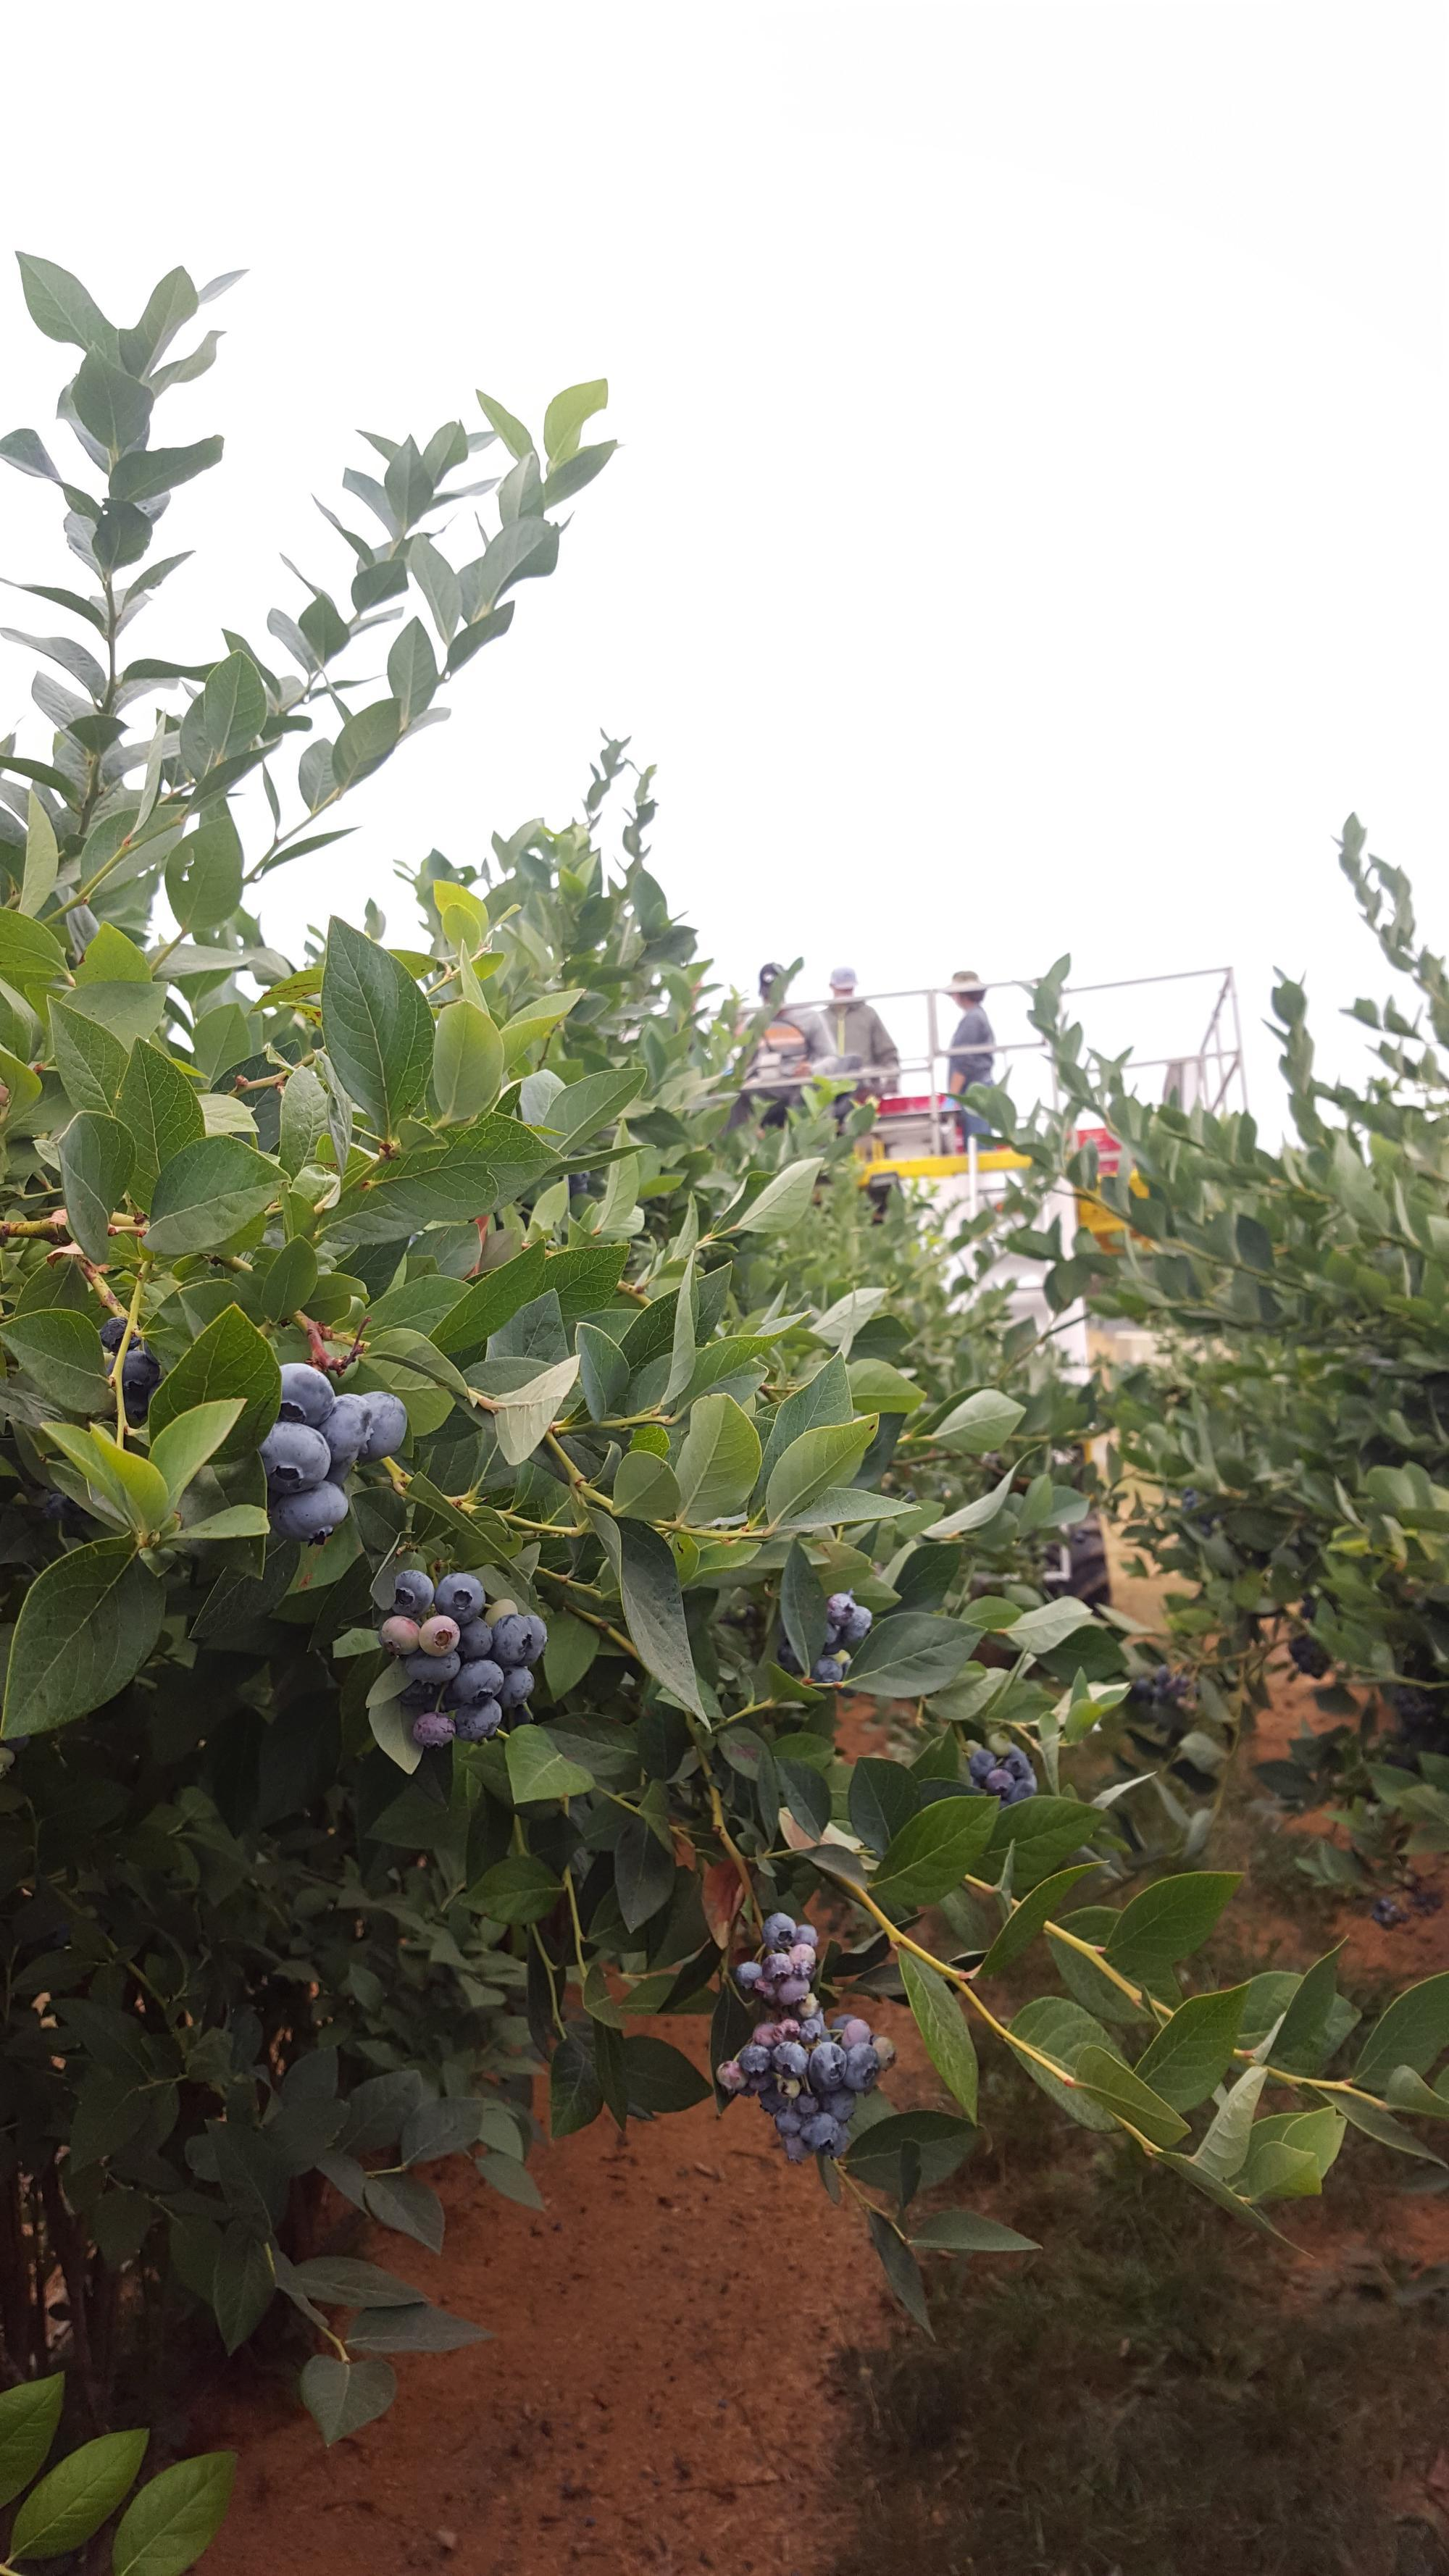 'Elliott' blueberries are machine harvested for a research trial in August 2018